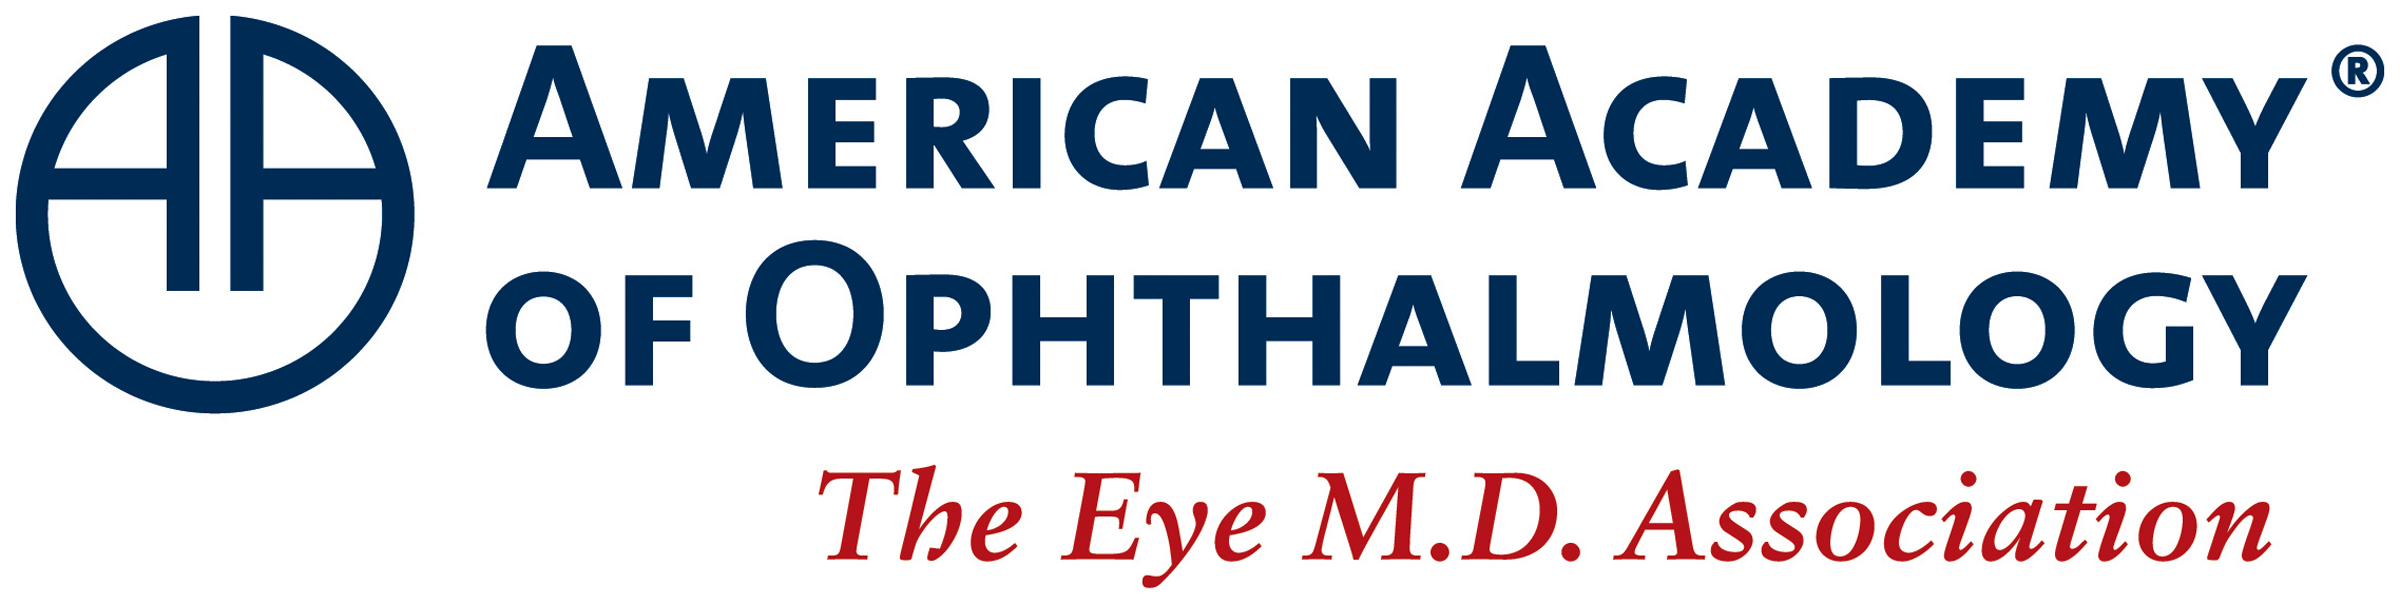 American Academy of Ophthalmology (AAO)